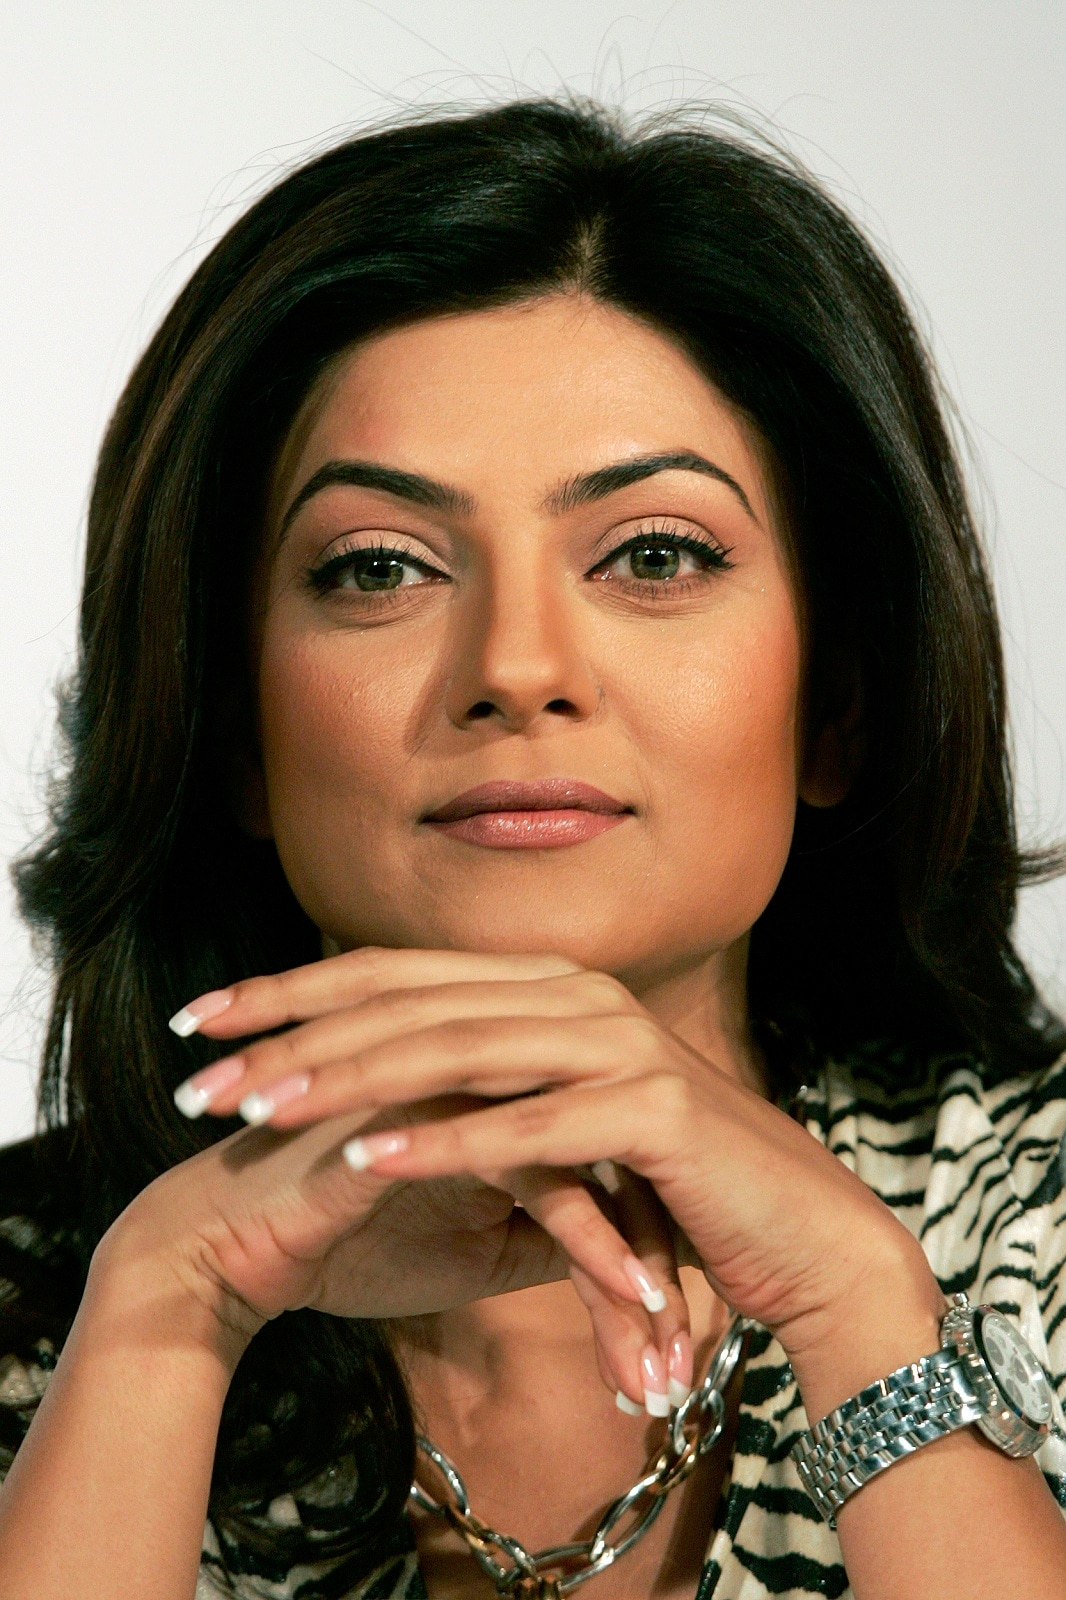 #10. Former Miss Universe and actor Sushmita Sen. Admiration Score: 4.52 percent. (Image: Reuters)